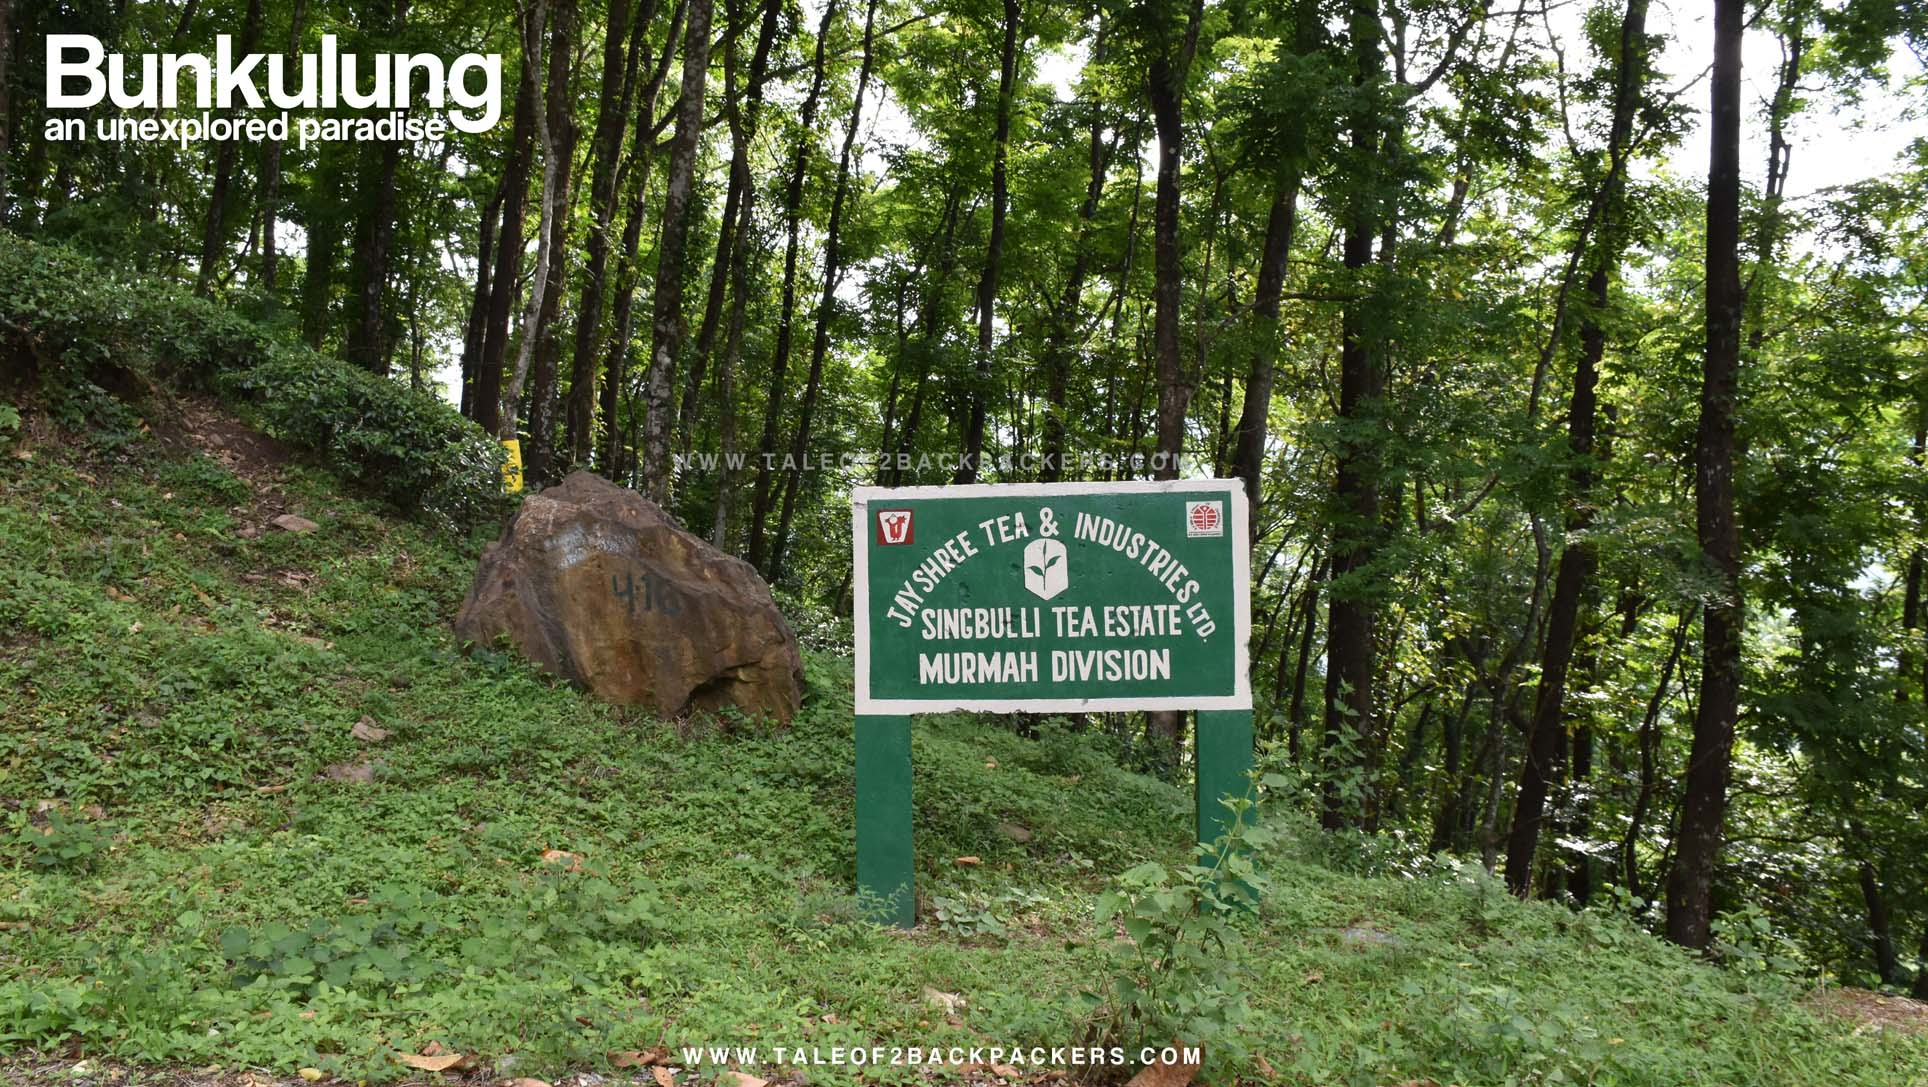 Singbull Tea Estate at Bunkulung - an offbeat and beautiful weekend getaway from Kolkata